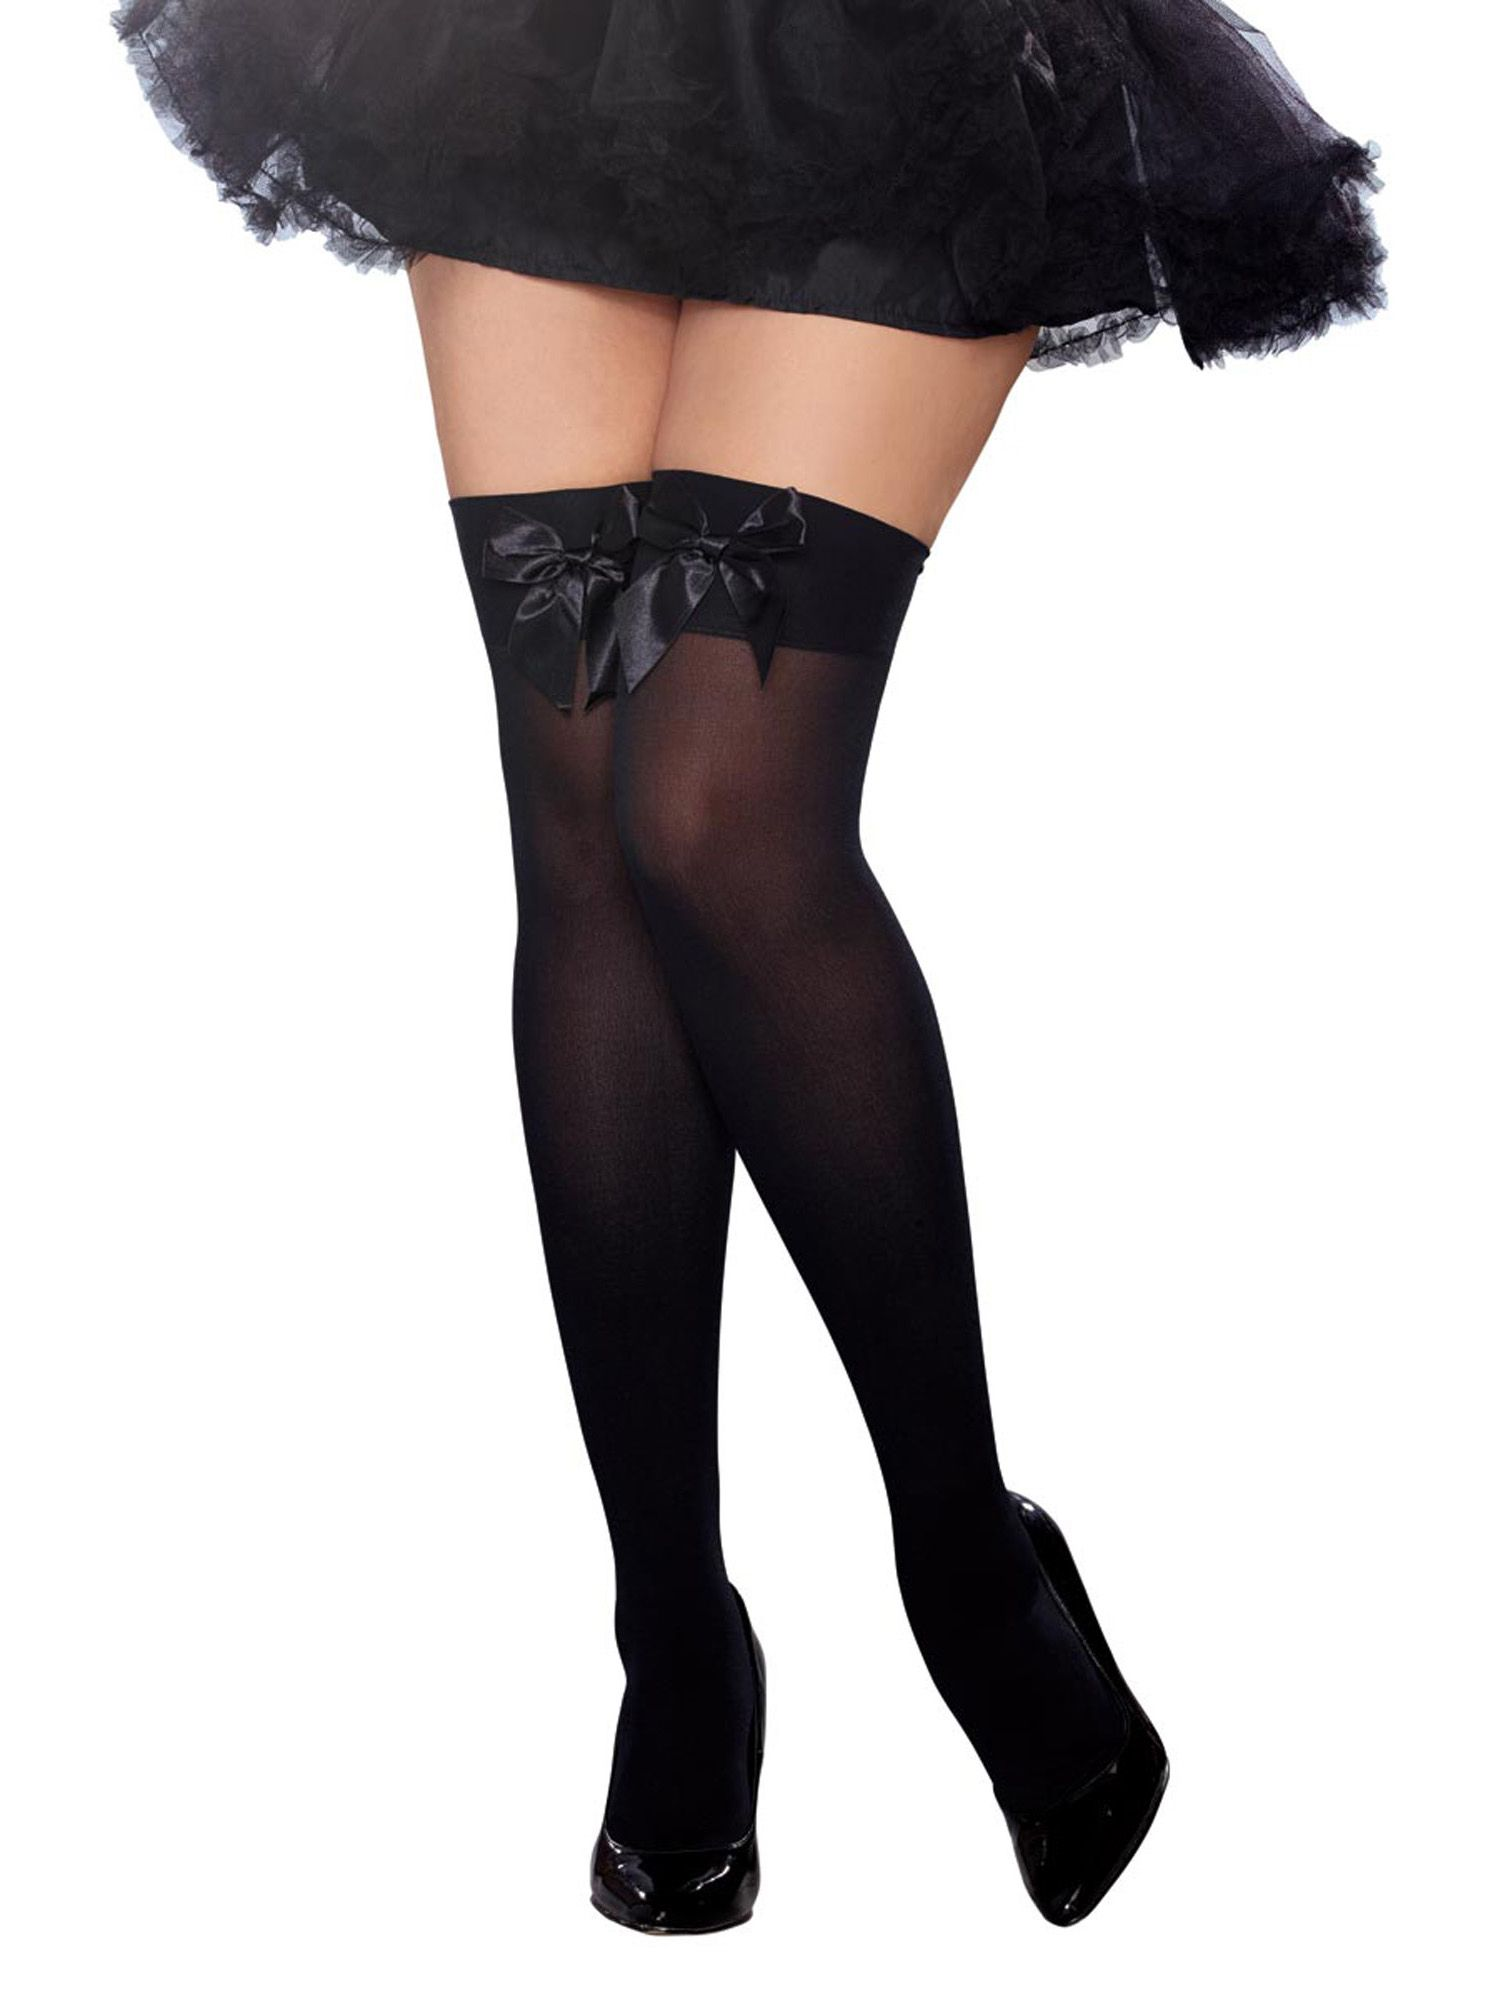 bfacf3d144c57 Womens Plus Size Satin Bow Opaque Thigh High Stockings With Bow Hosiery #Satin#Bow#Womens